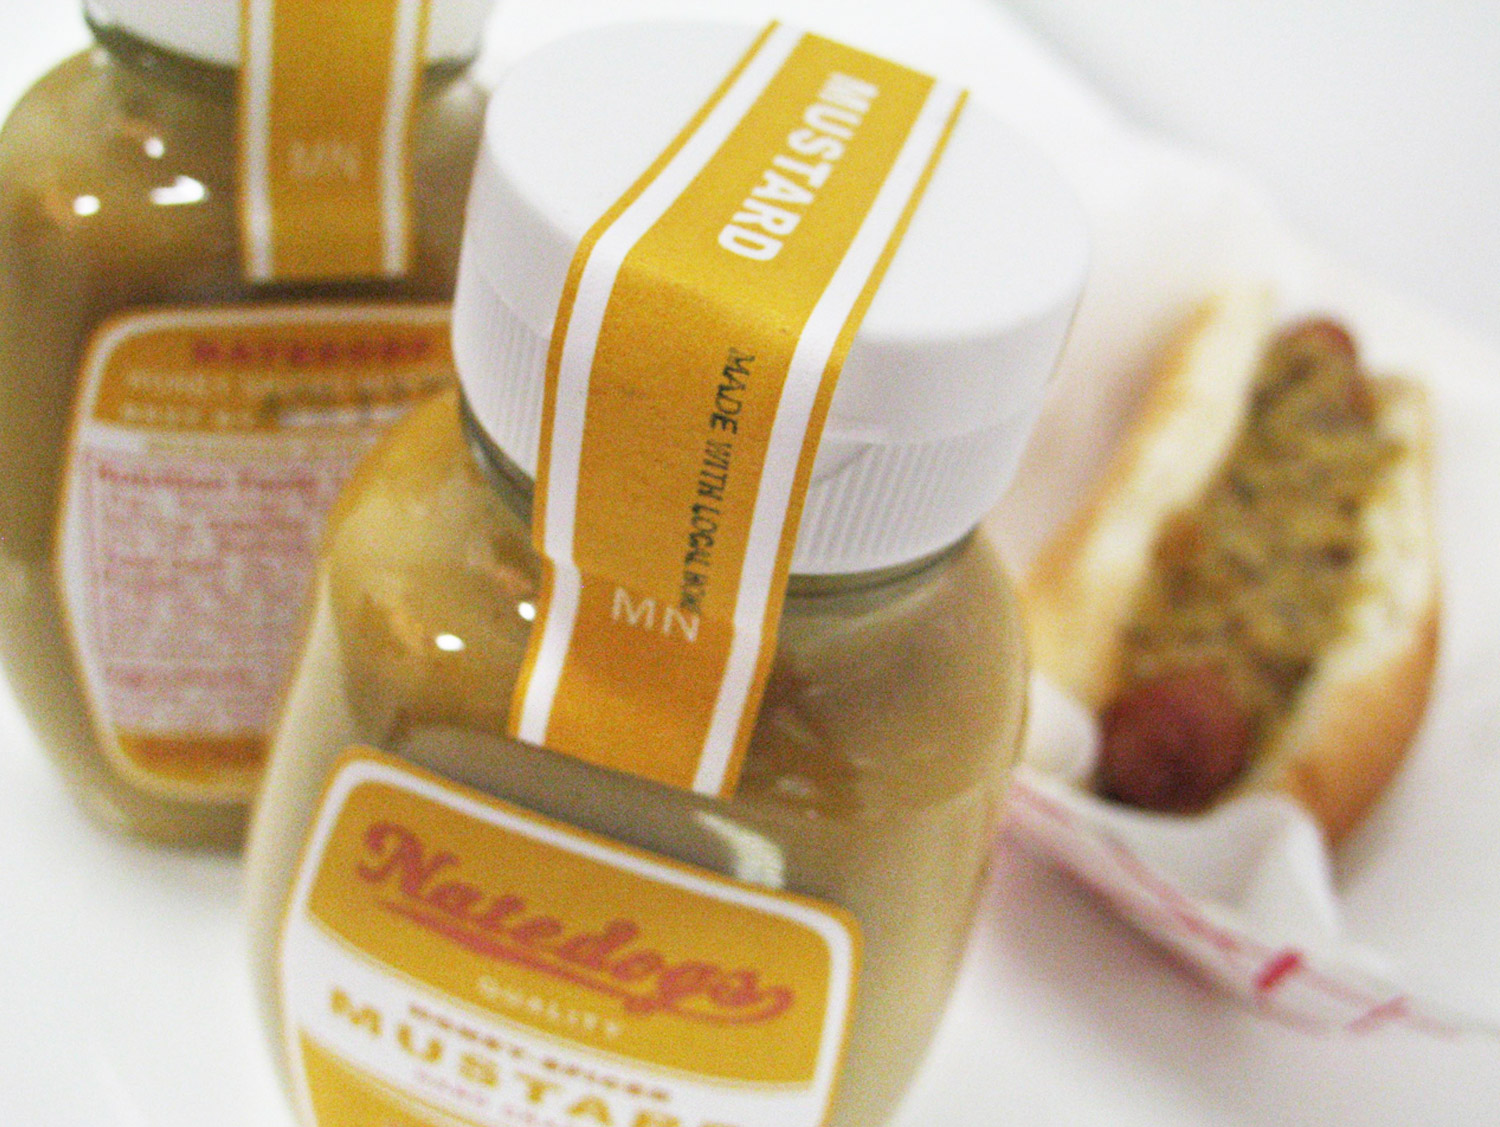 Natedogs-Mustard-Packaging-02.jpg